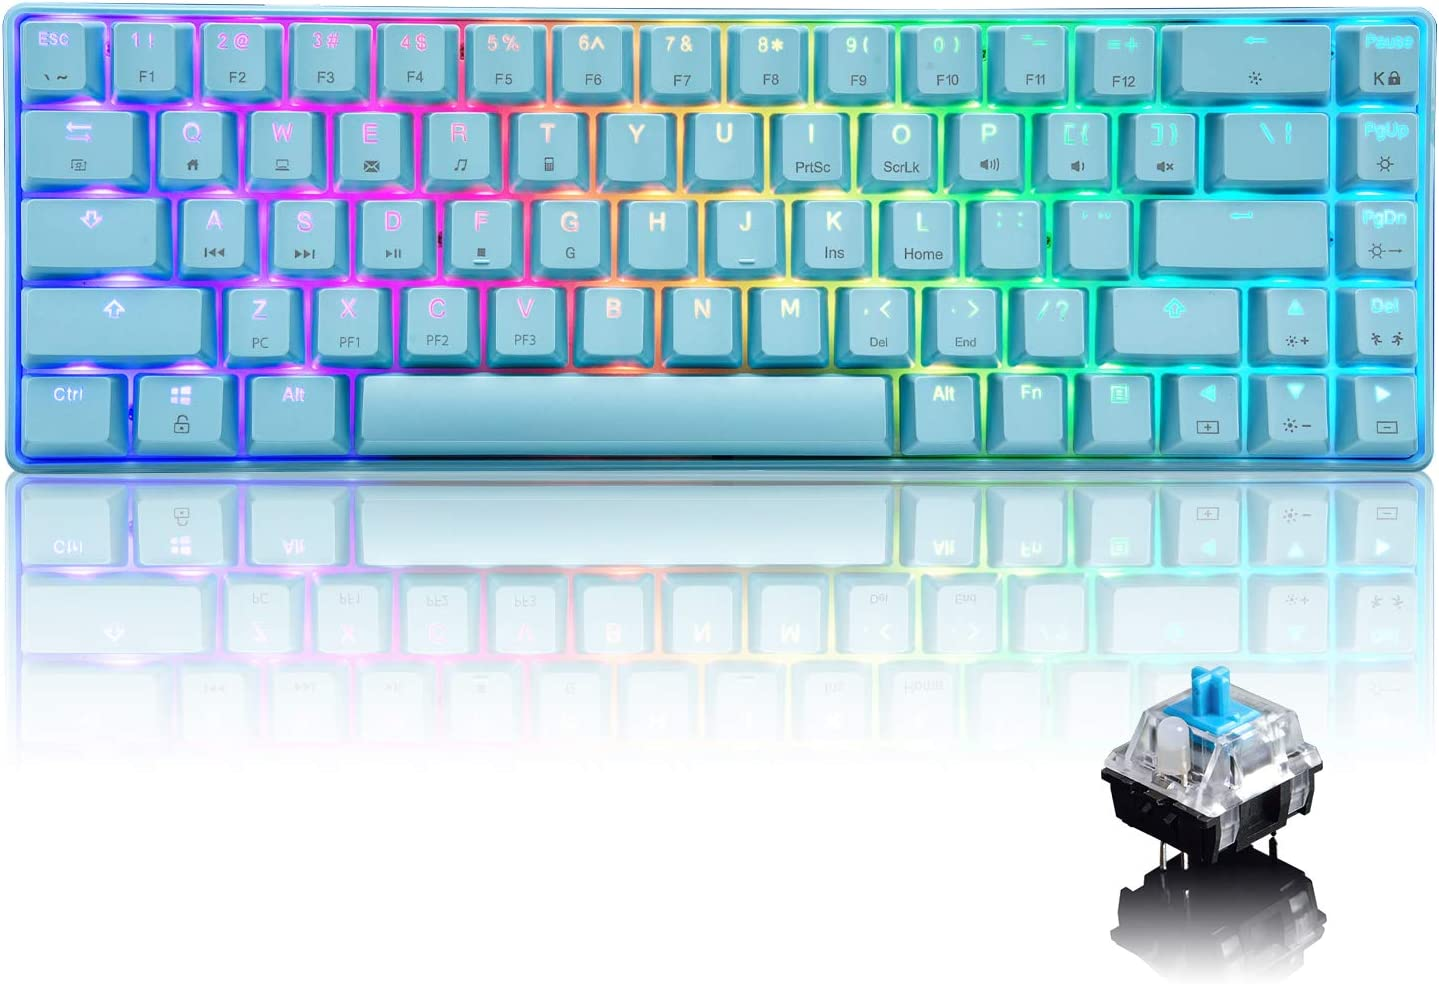 Large discharge sale Max 87% OFF Wired 60% Mechanical Gaming Keyboard Backlit RGB Chroma with Typ